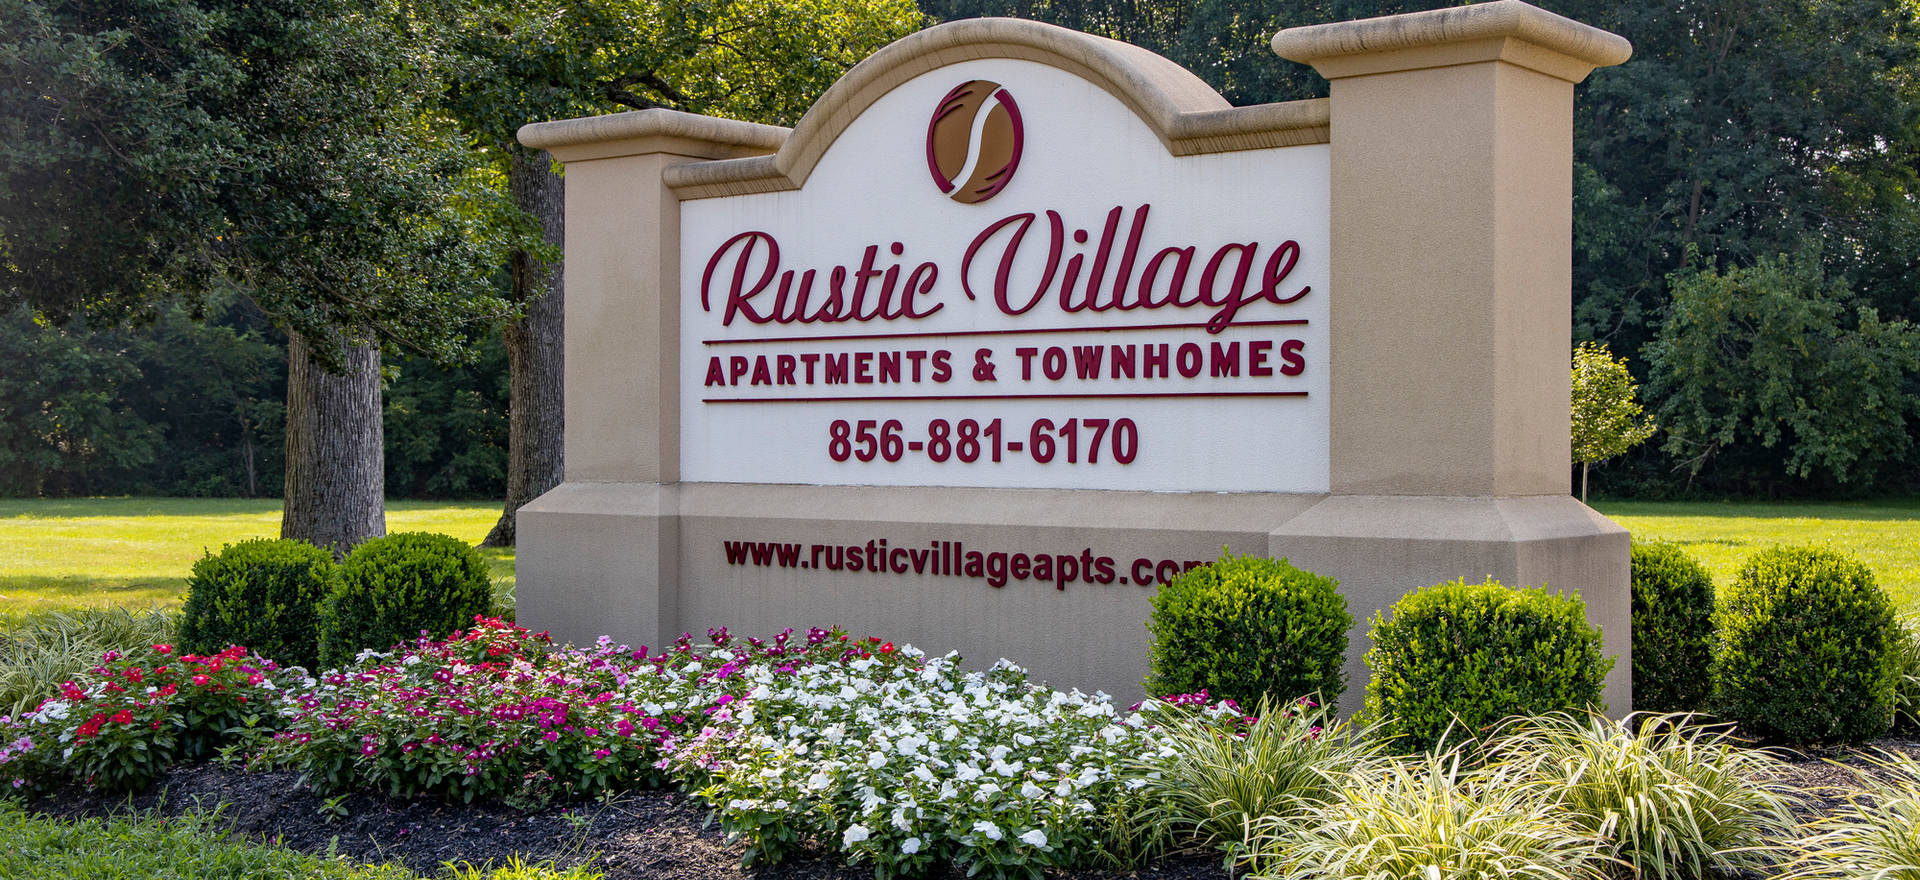 Welcome to Rustic Village